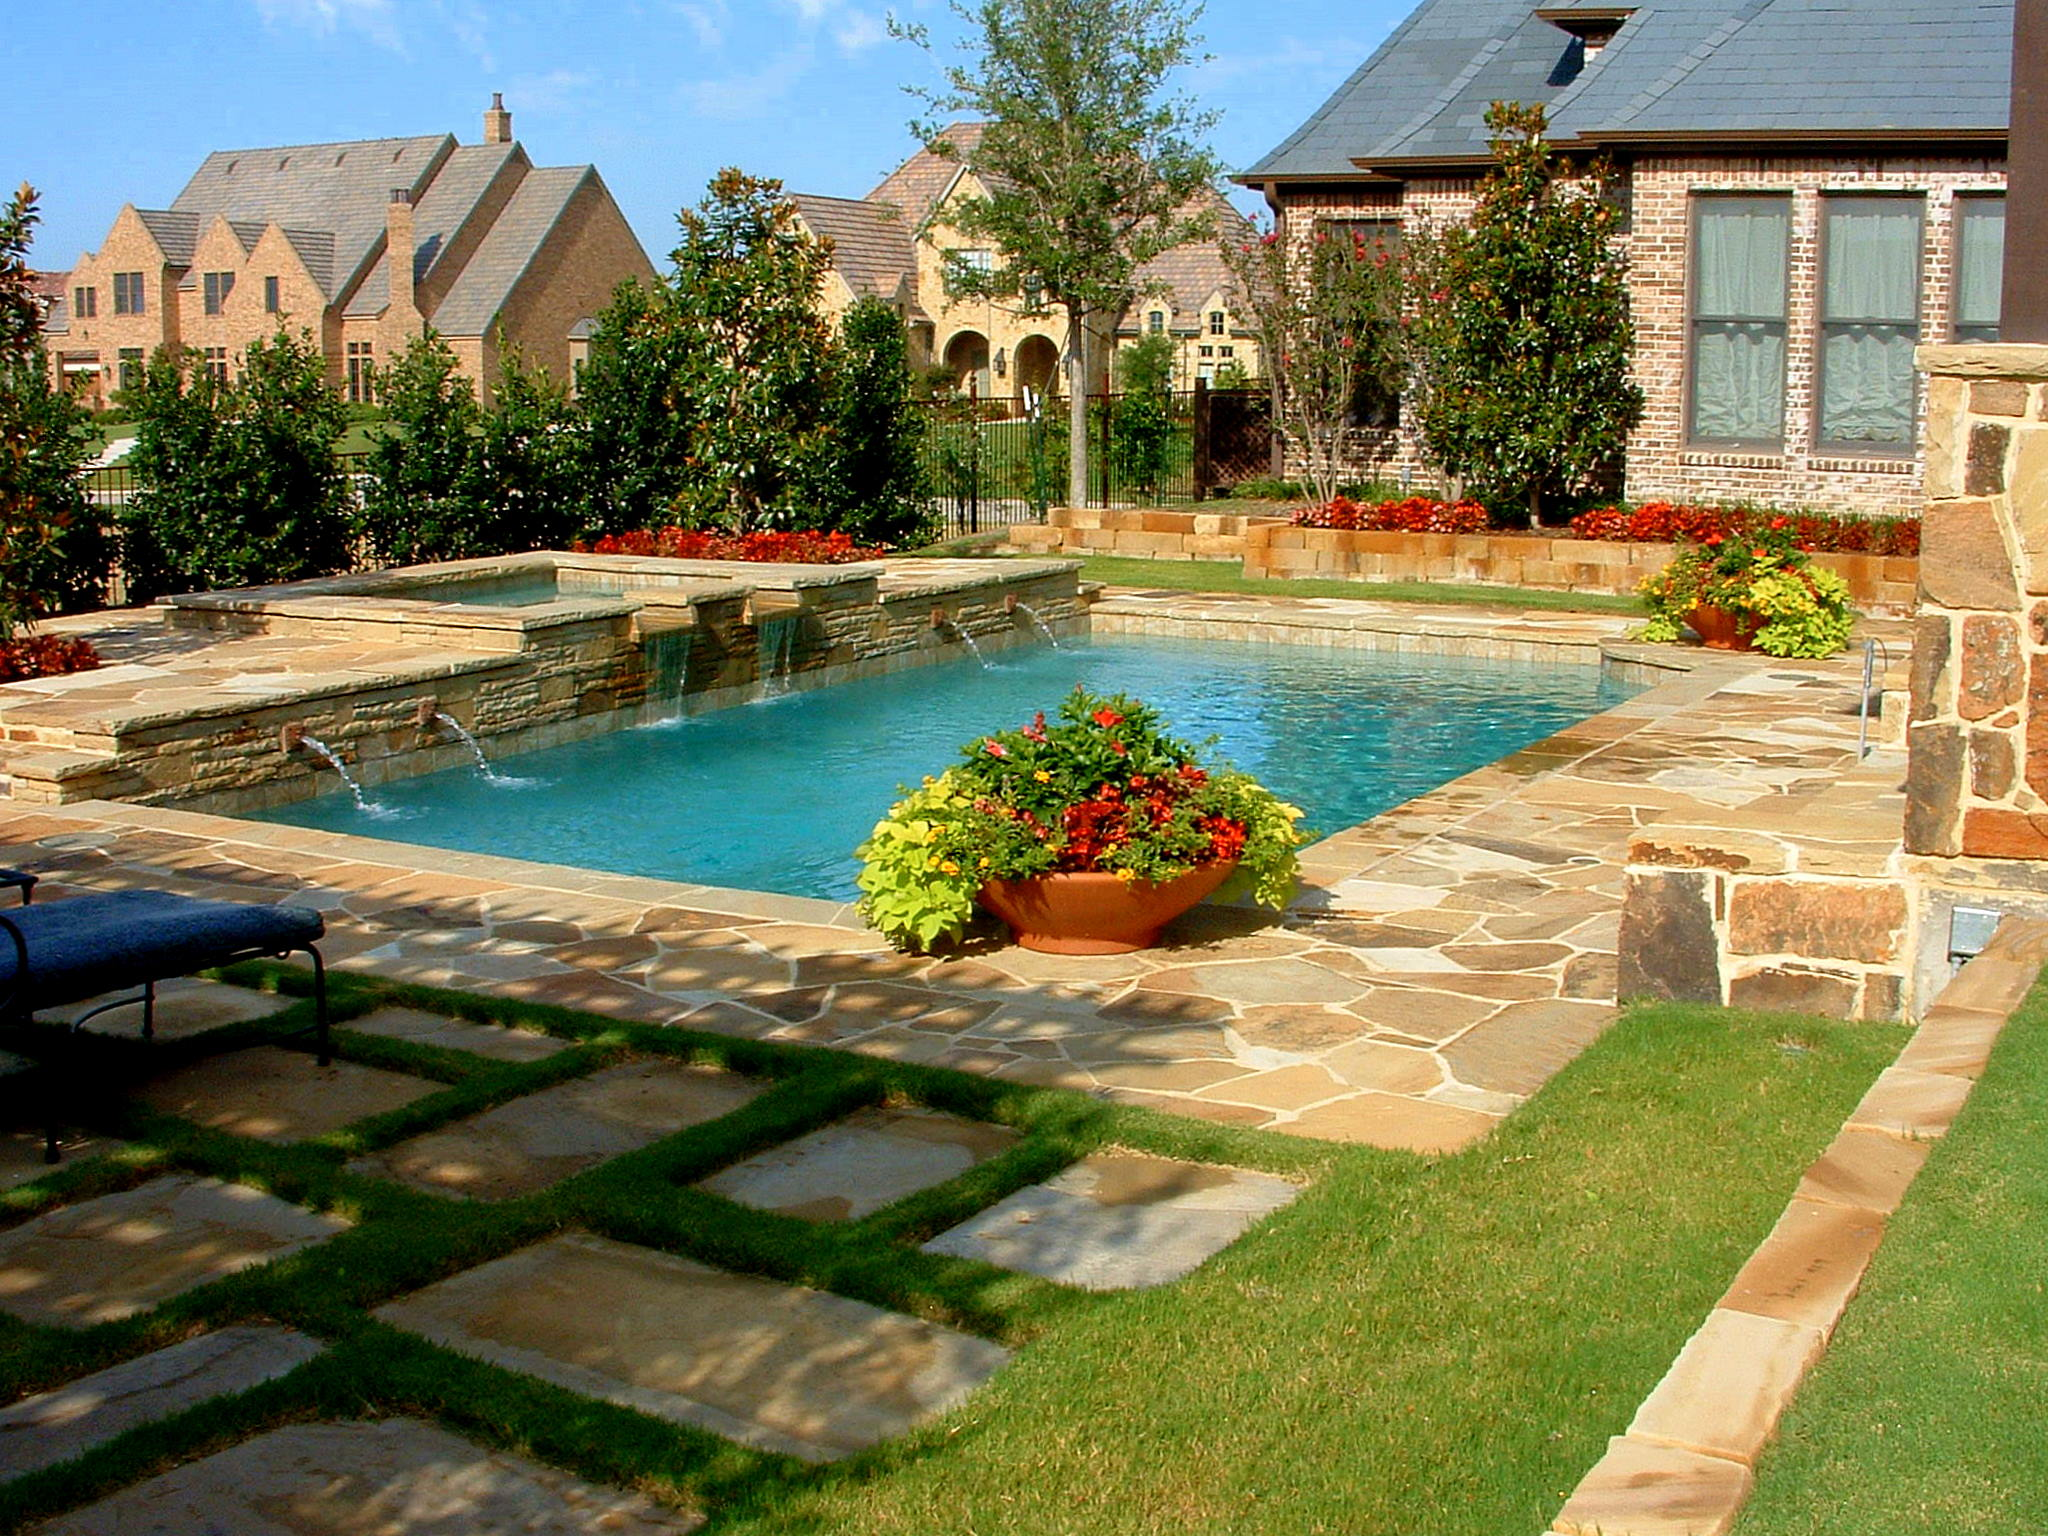 swimming pool backyard ideas photo - 2